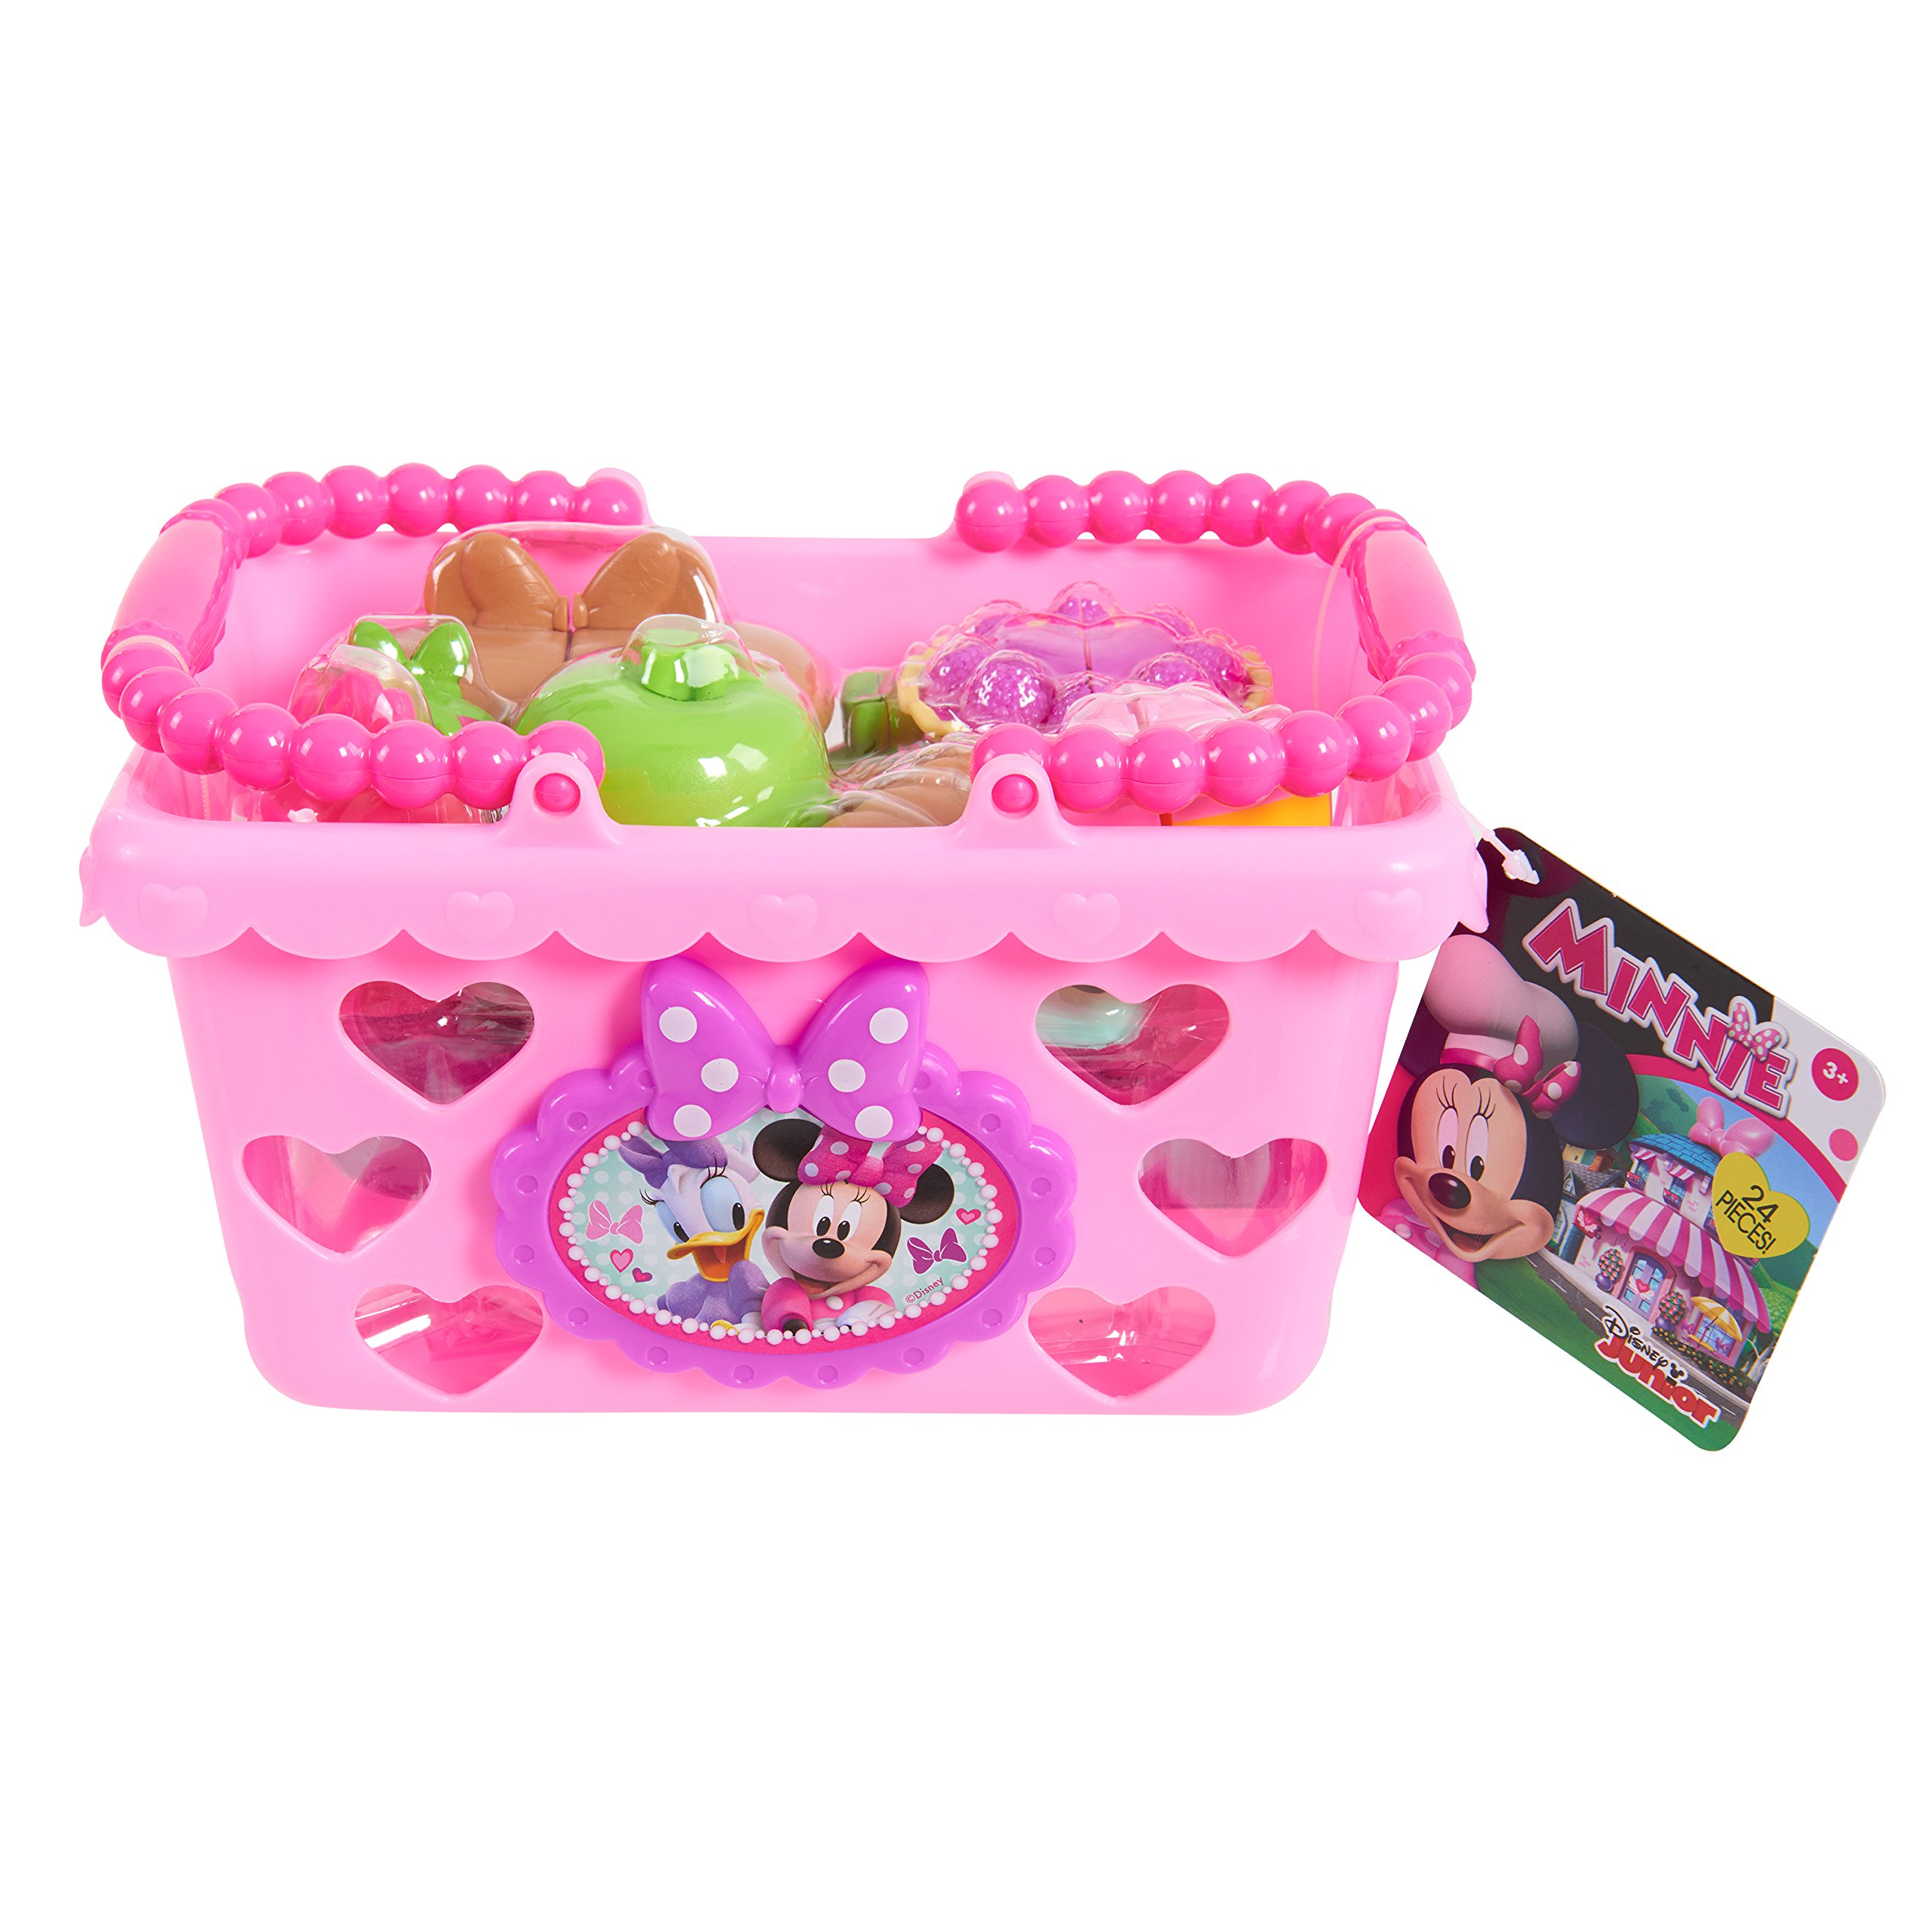 Minnie Bow Tique Bowtastic Shopping Basket Set, Pink (Styles may vary) by Minnie